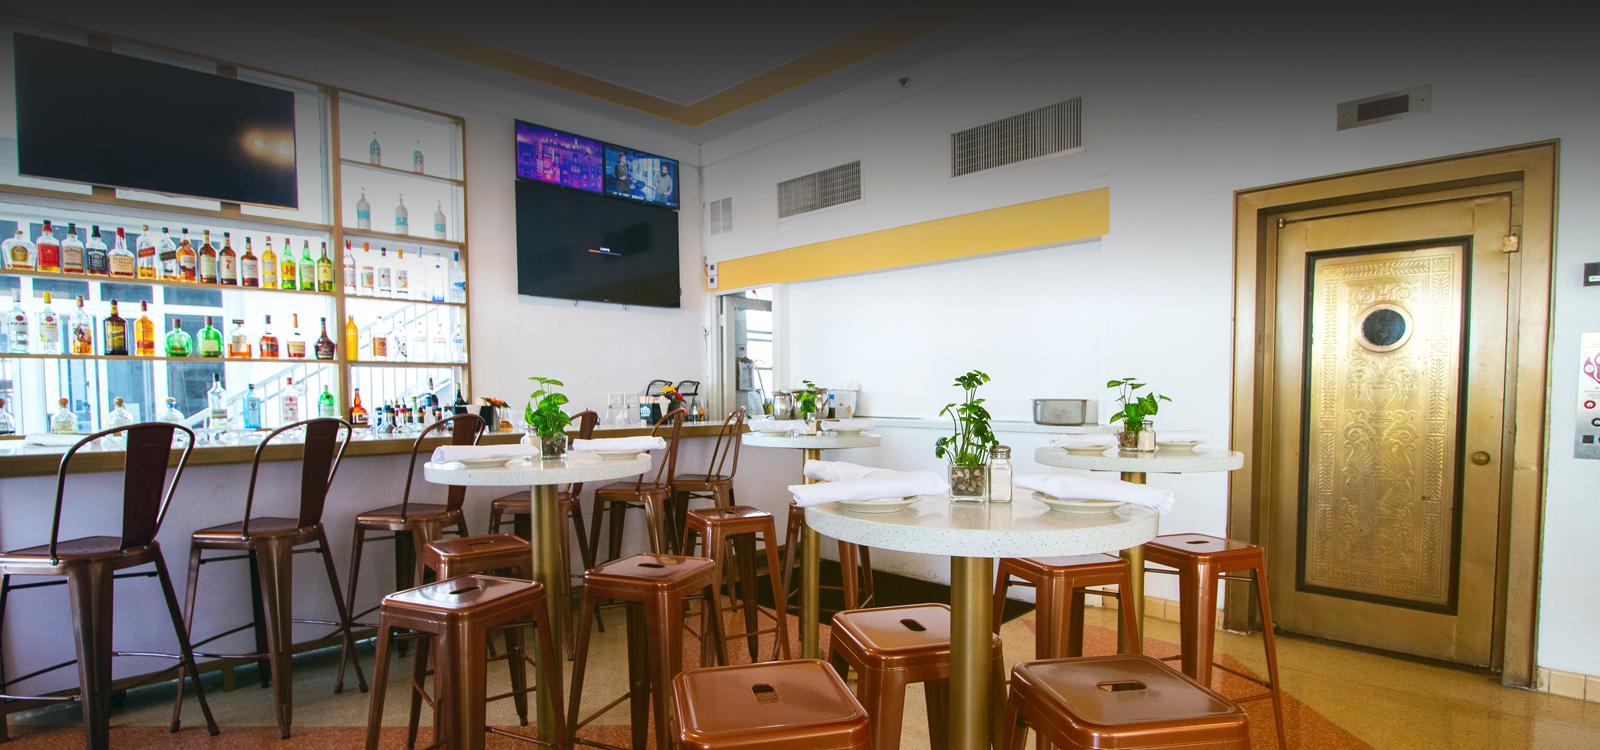 OUR ONSITE OCEAN 7 CAFÉ SERVES BREAKFAST, LUNCH , AND DINNER